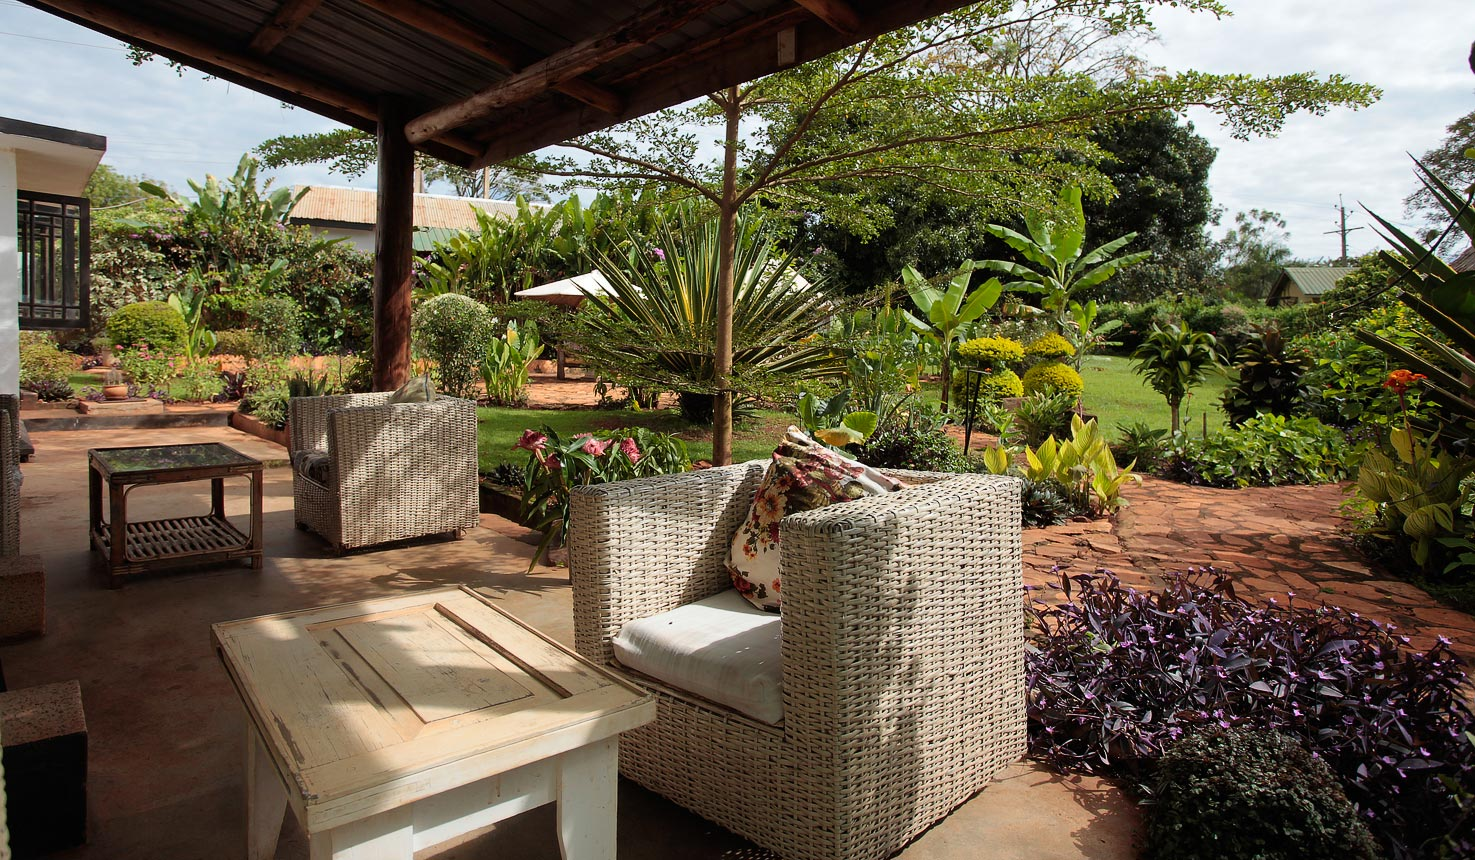 Gately On Nile Lodge and Cottages, Jinja - Accommodation in Jinja